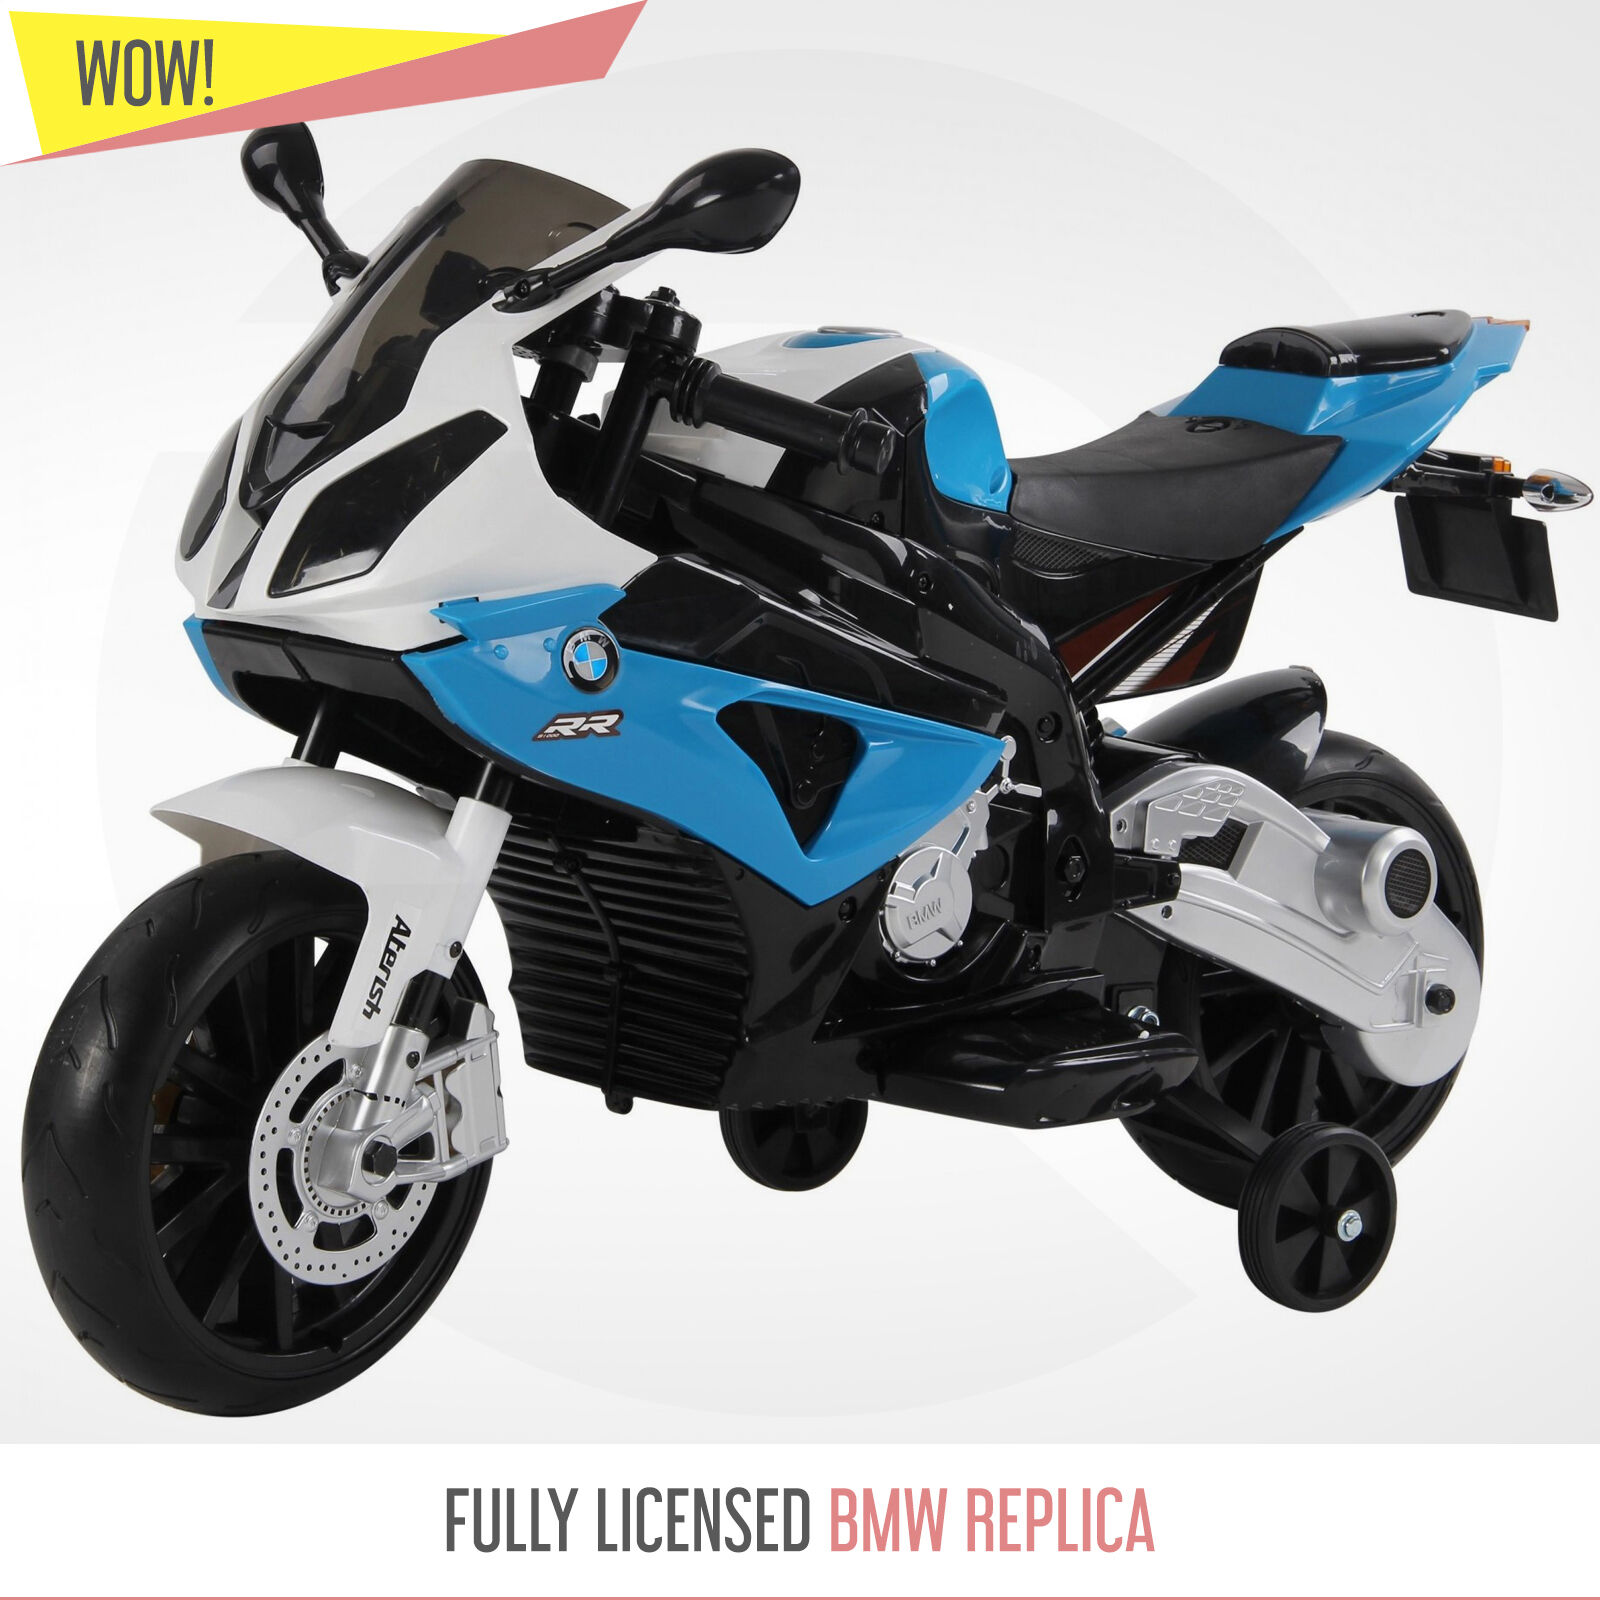 BMW S1000RR 12v 12v 12v Kids Electric Ride On Bike Motorbike Official Licensed BMW Bikes 1361cb